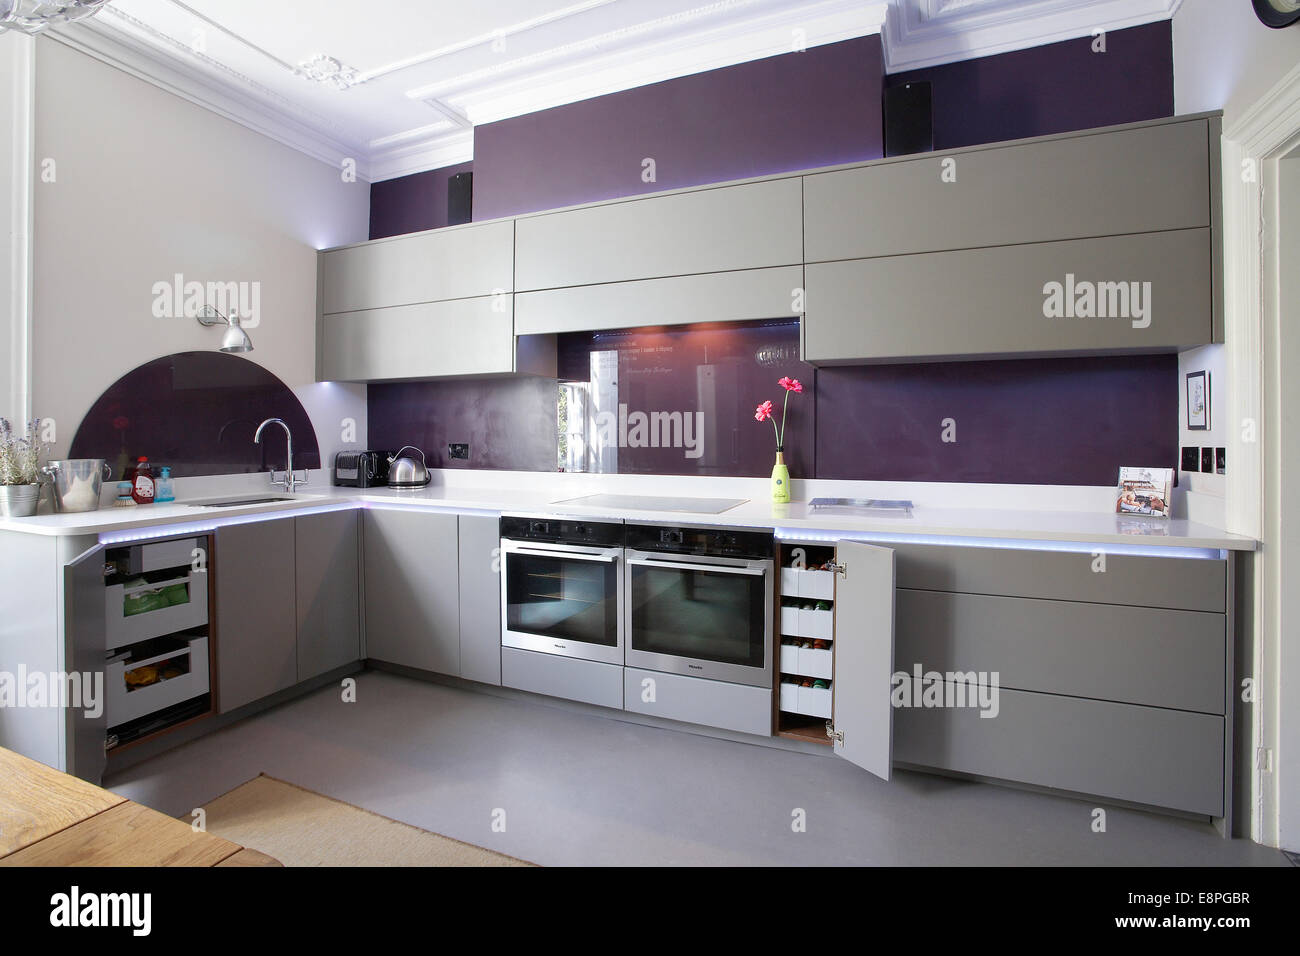 Cupboards Kitchen Kitchen Cupboards Open Stock Photos Kitchen Cupboards Open Stock